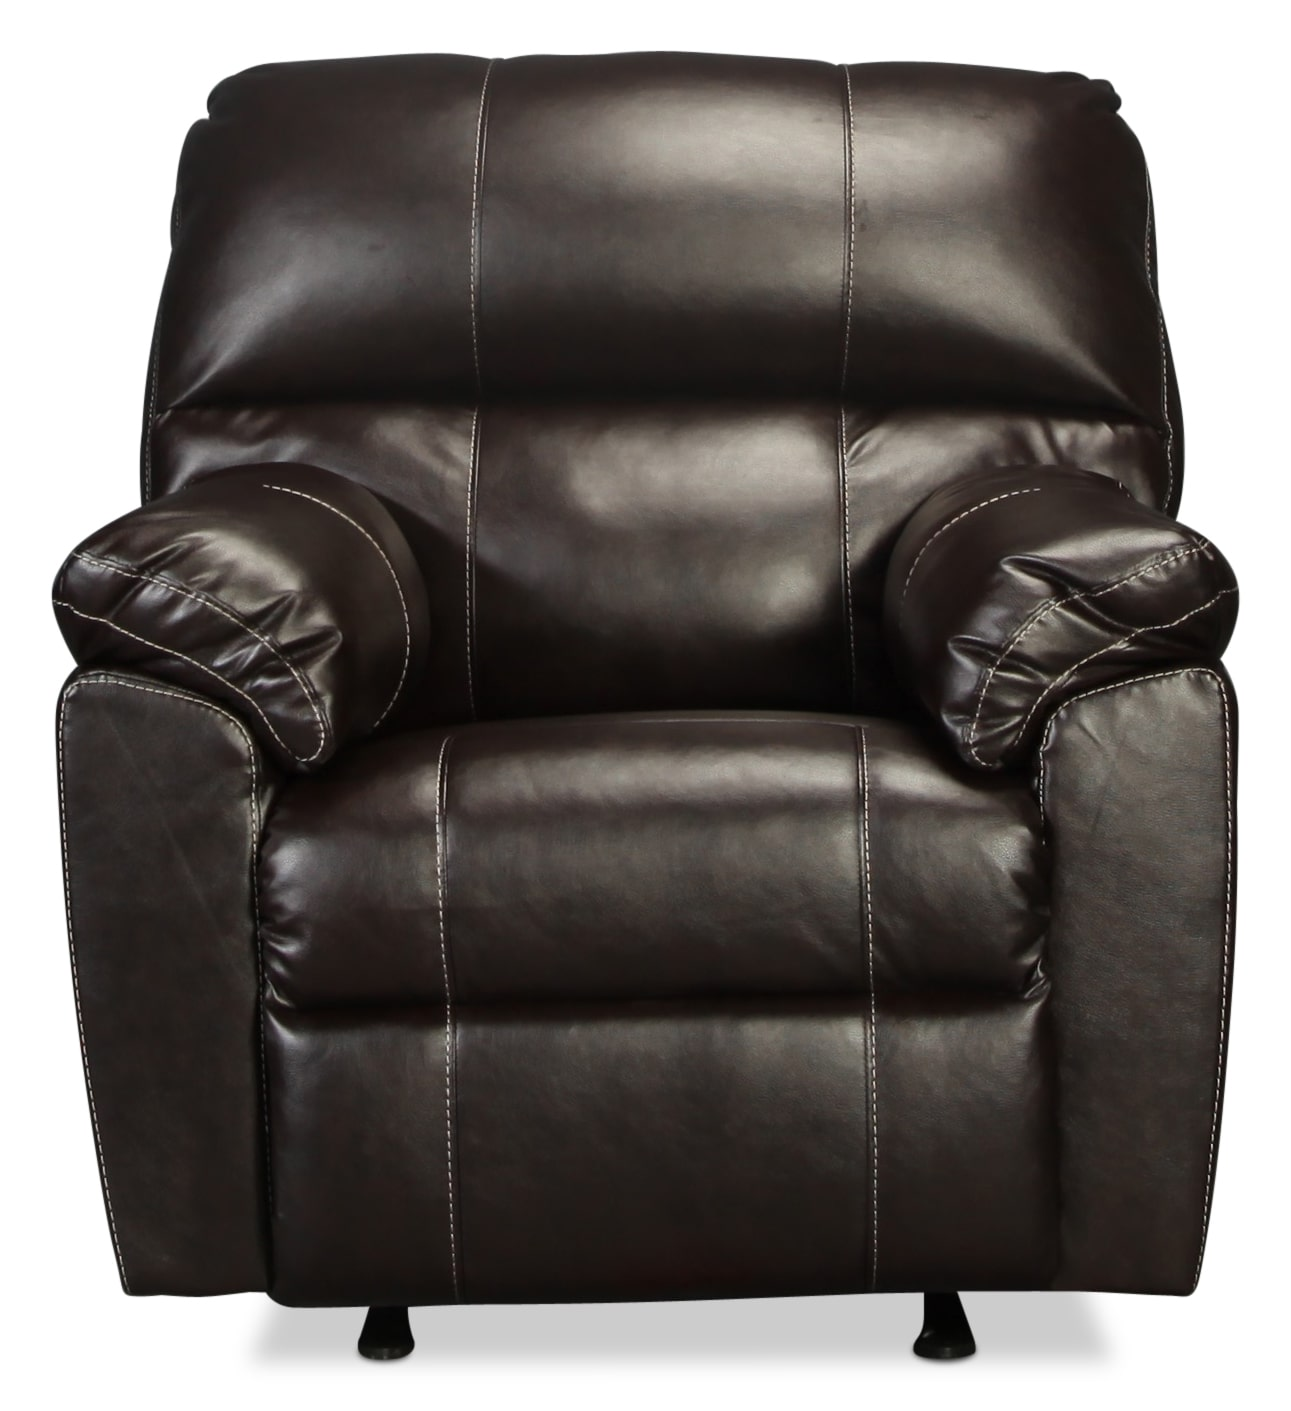 The Rigley Rocker Recliner - Chocolate